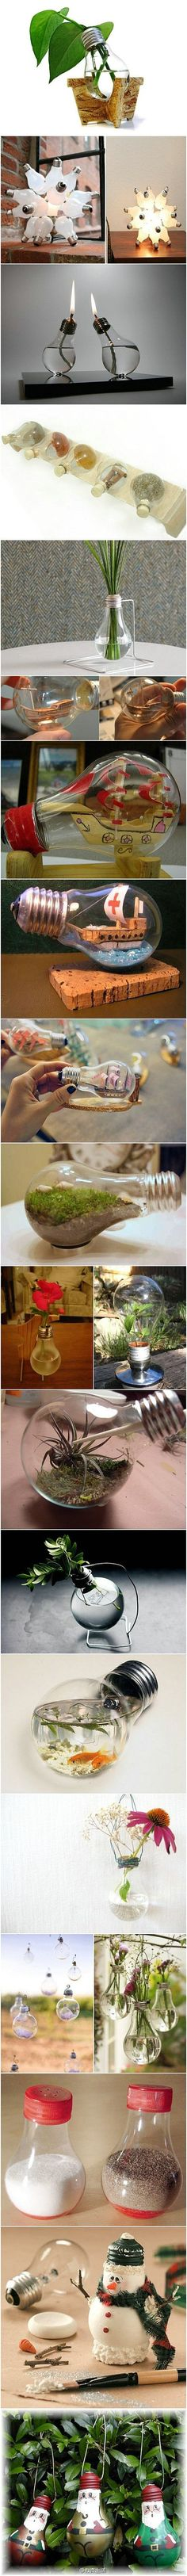 great ideas for recycling old light bulbs